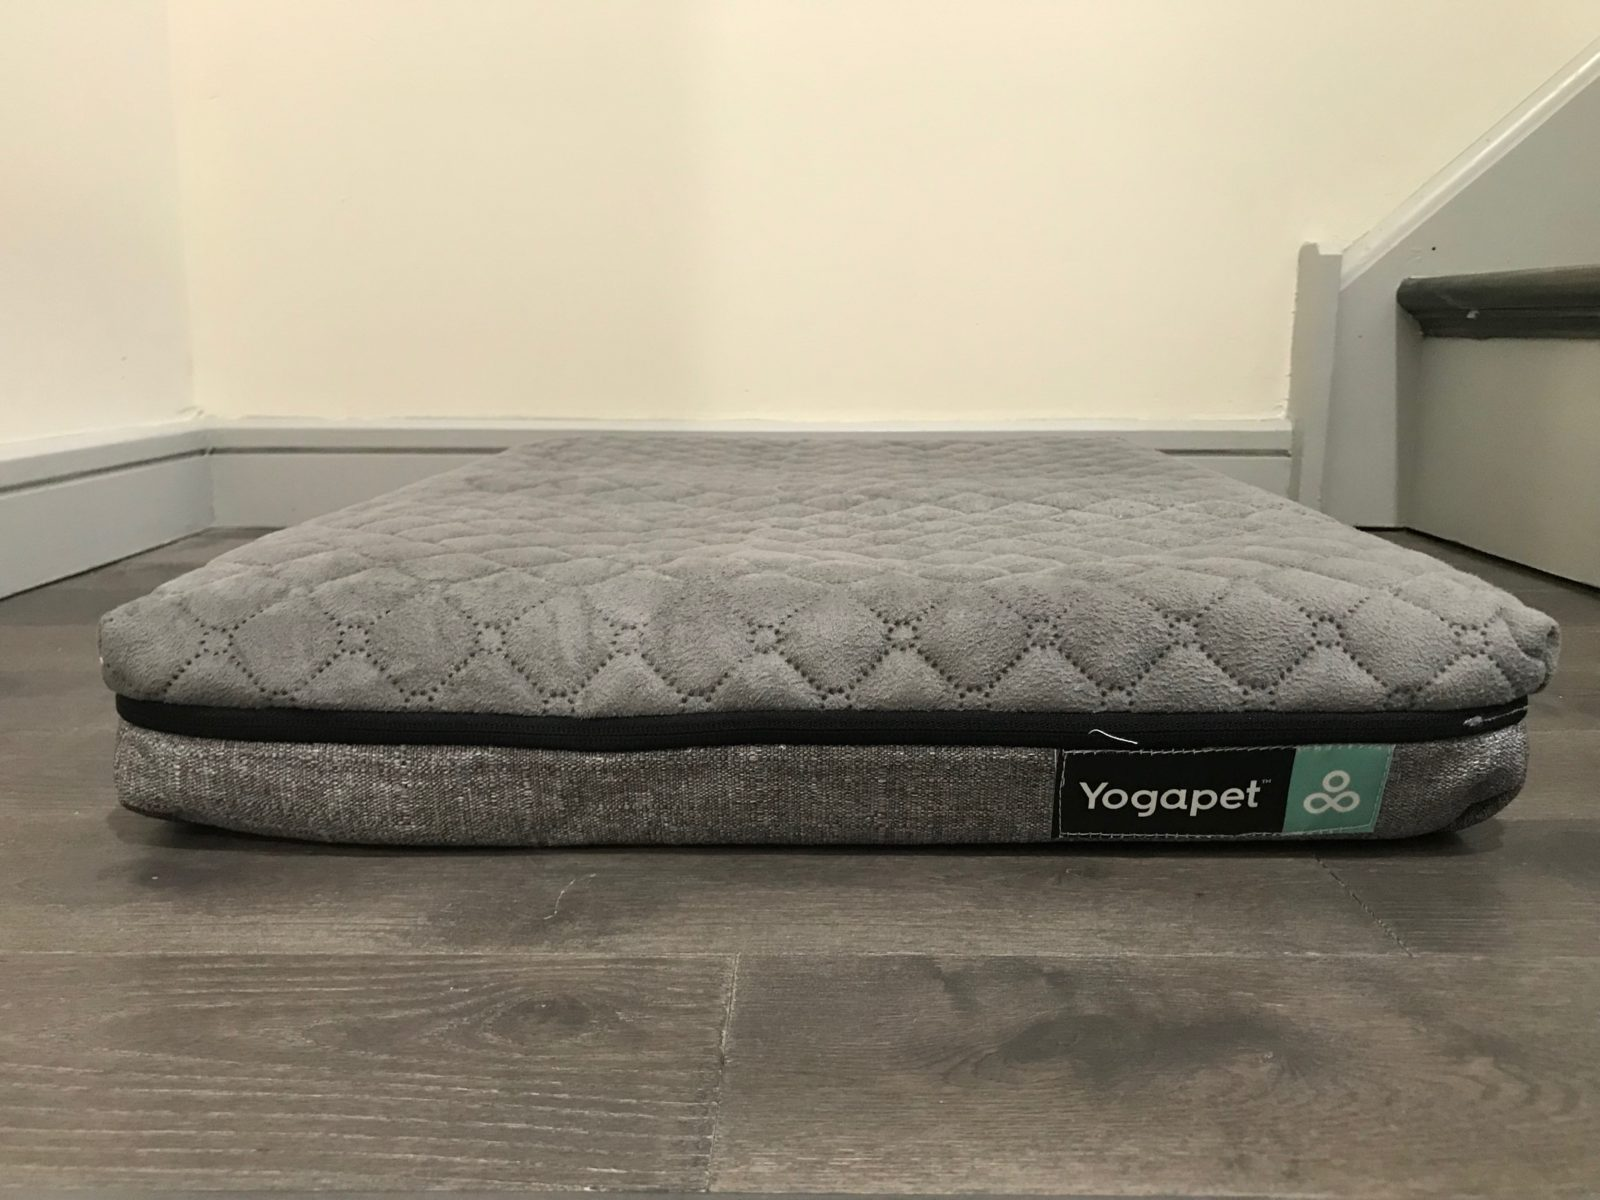 YogaPet Bed Review